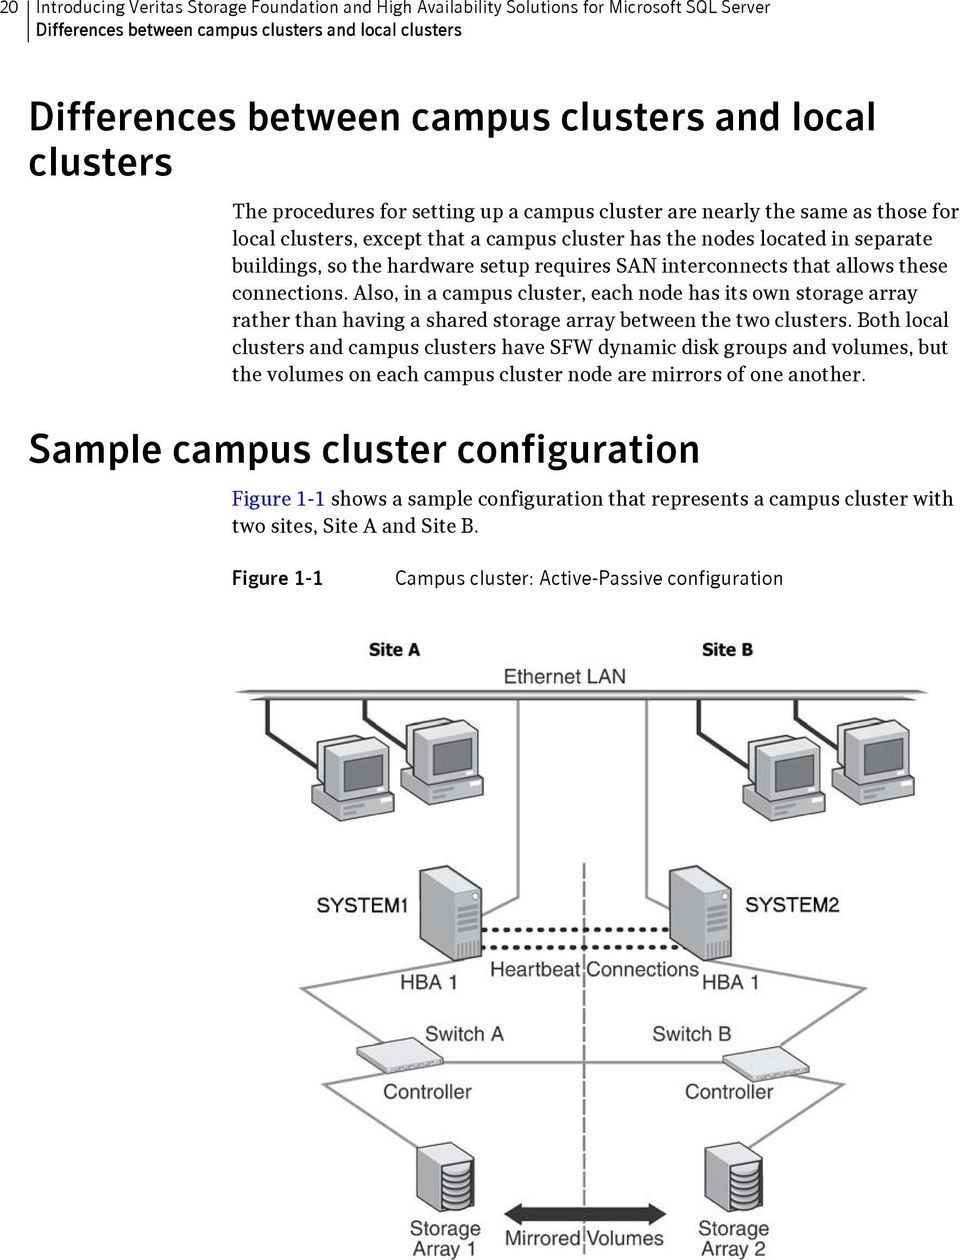 setup requires SAN interconnects that allows these connections. Also, in a campus cluster, each node has its own storage array rather than having a shared storage array between the two clusters.